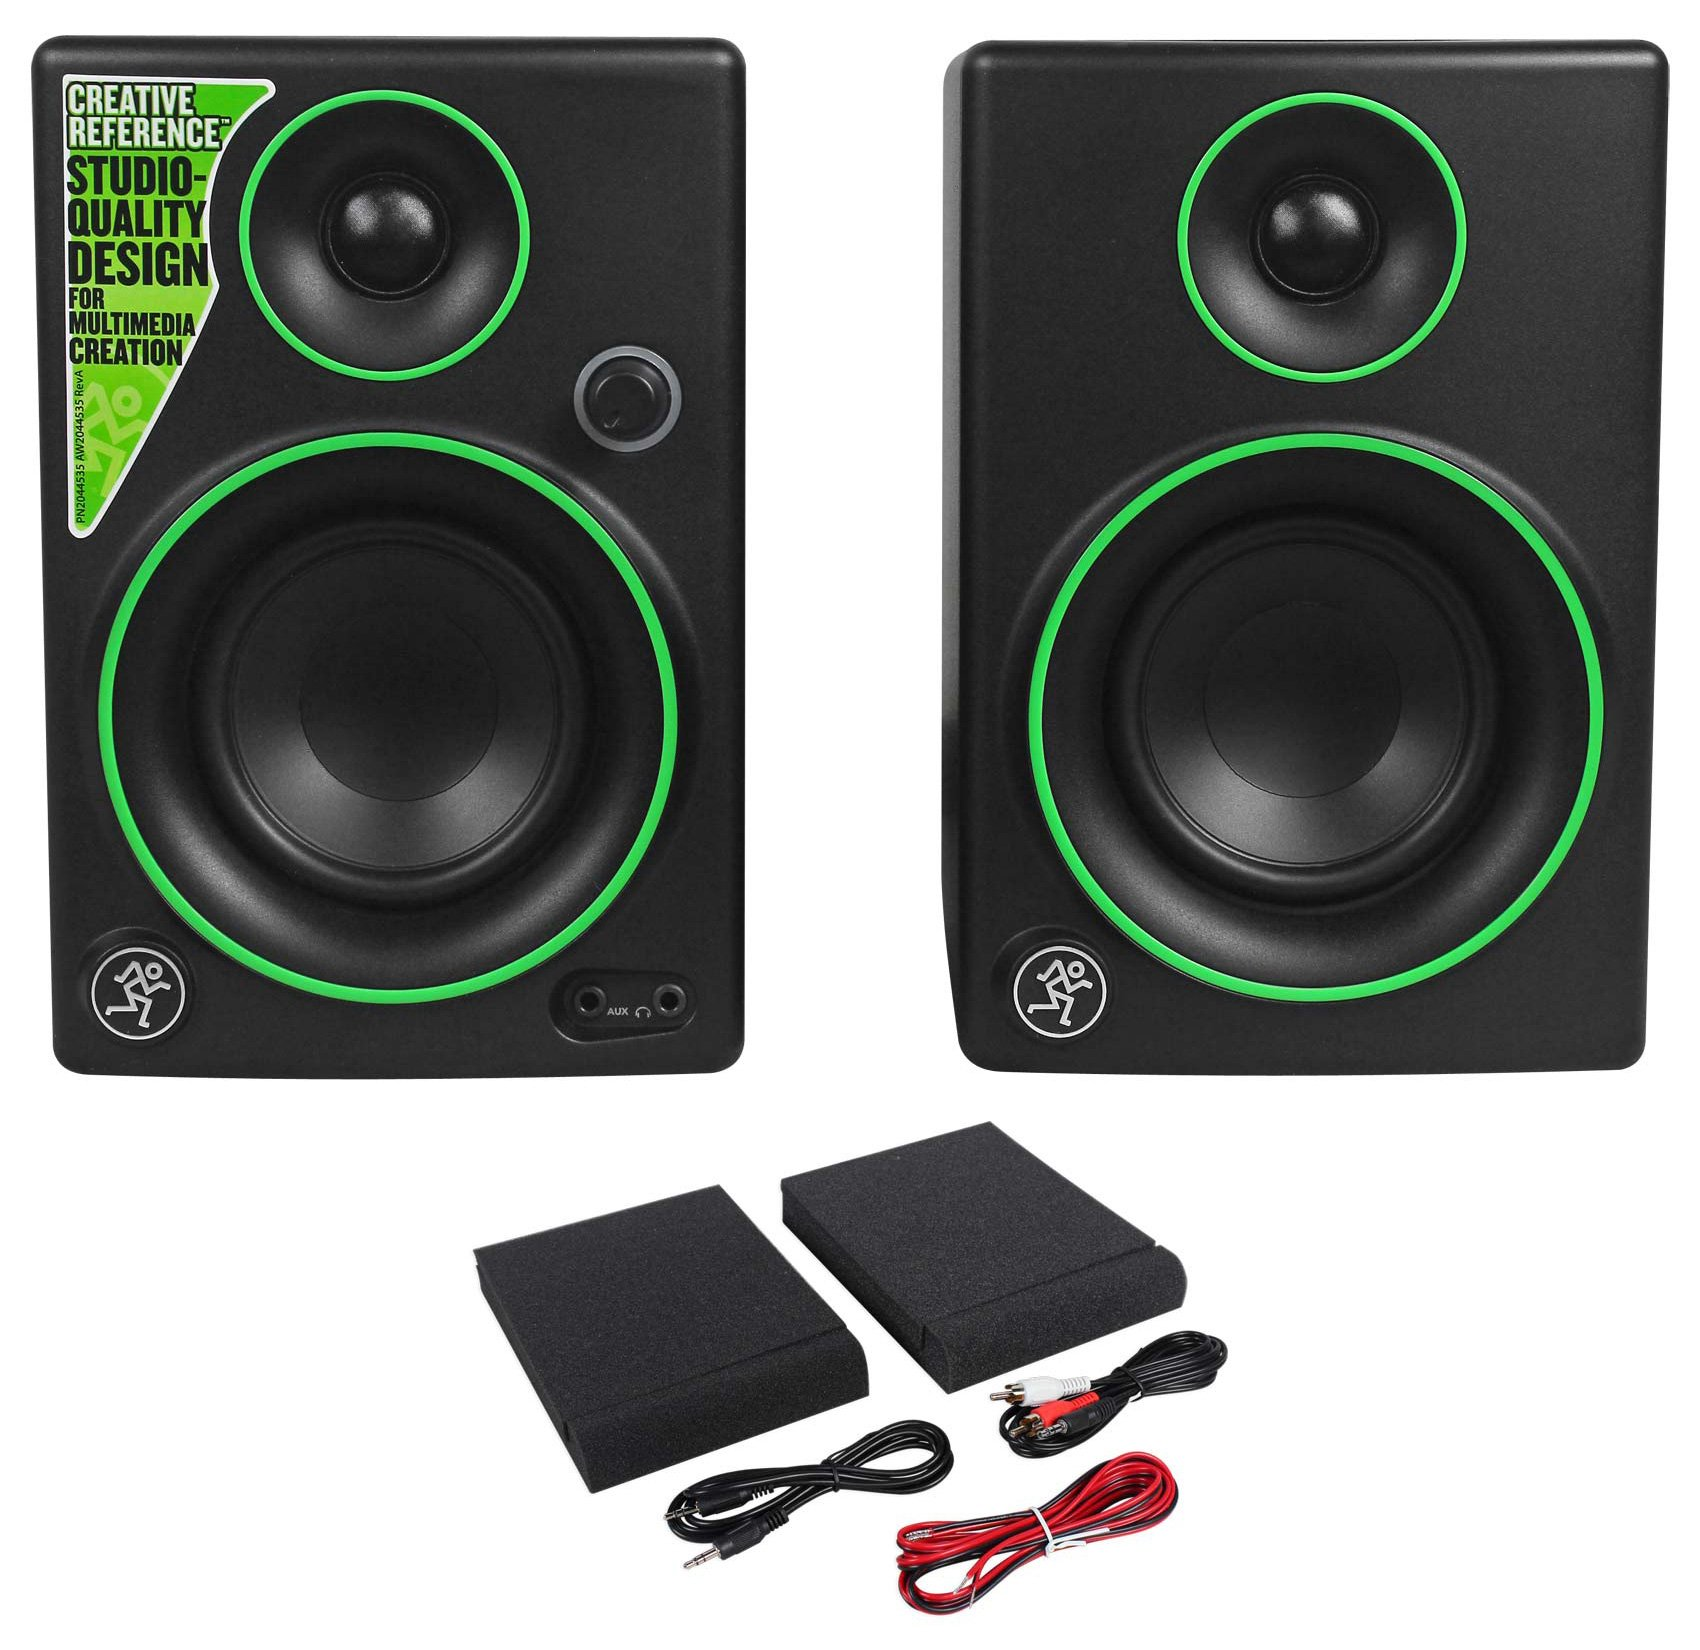 (2) Mackie CR3 3'' Studio/Computer/Podcast Podcasting Reference Monitors Speakers by Mackie